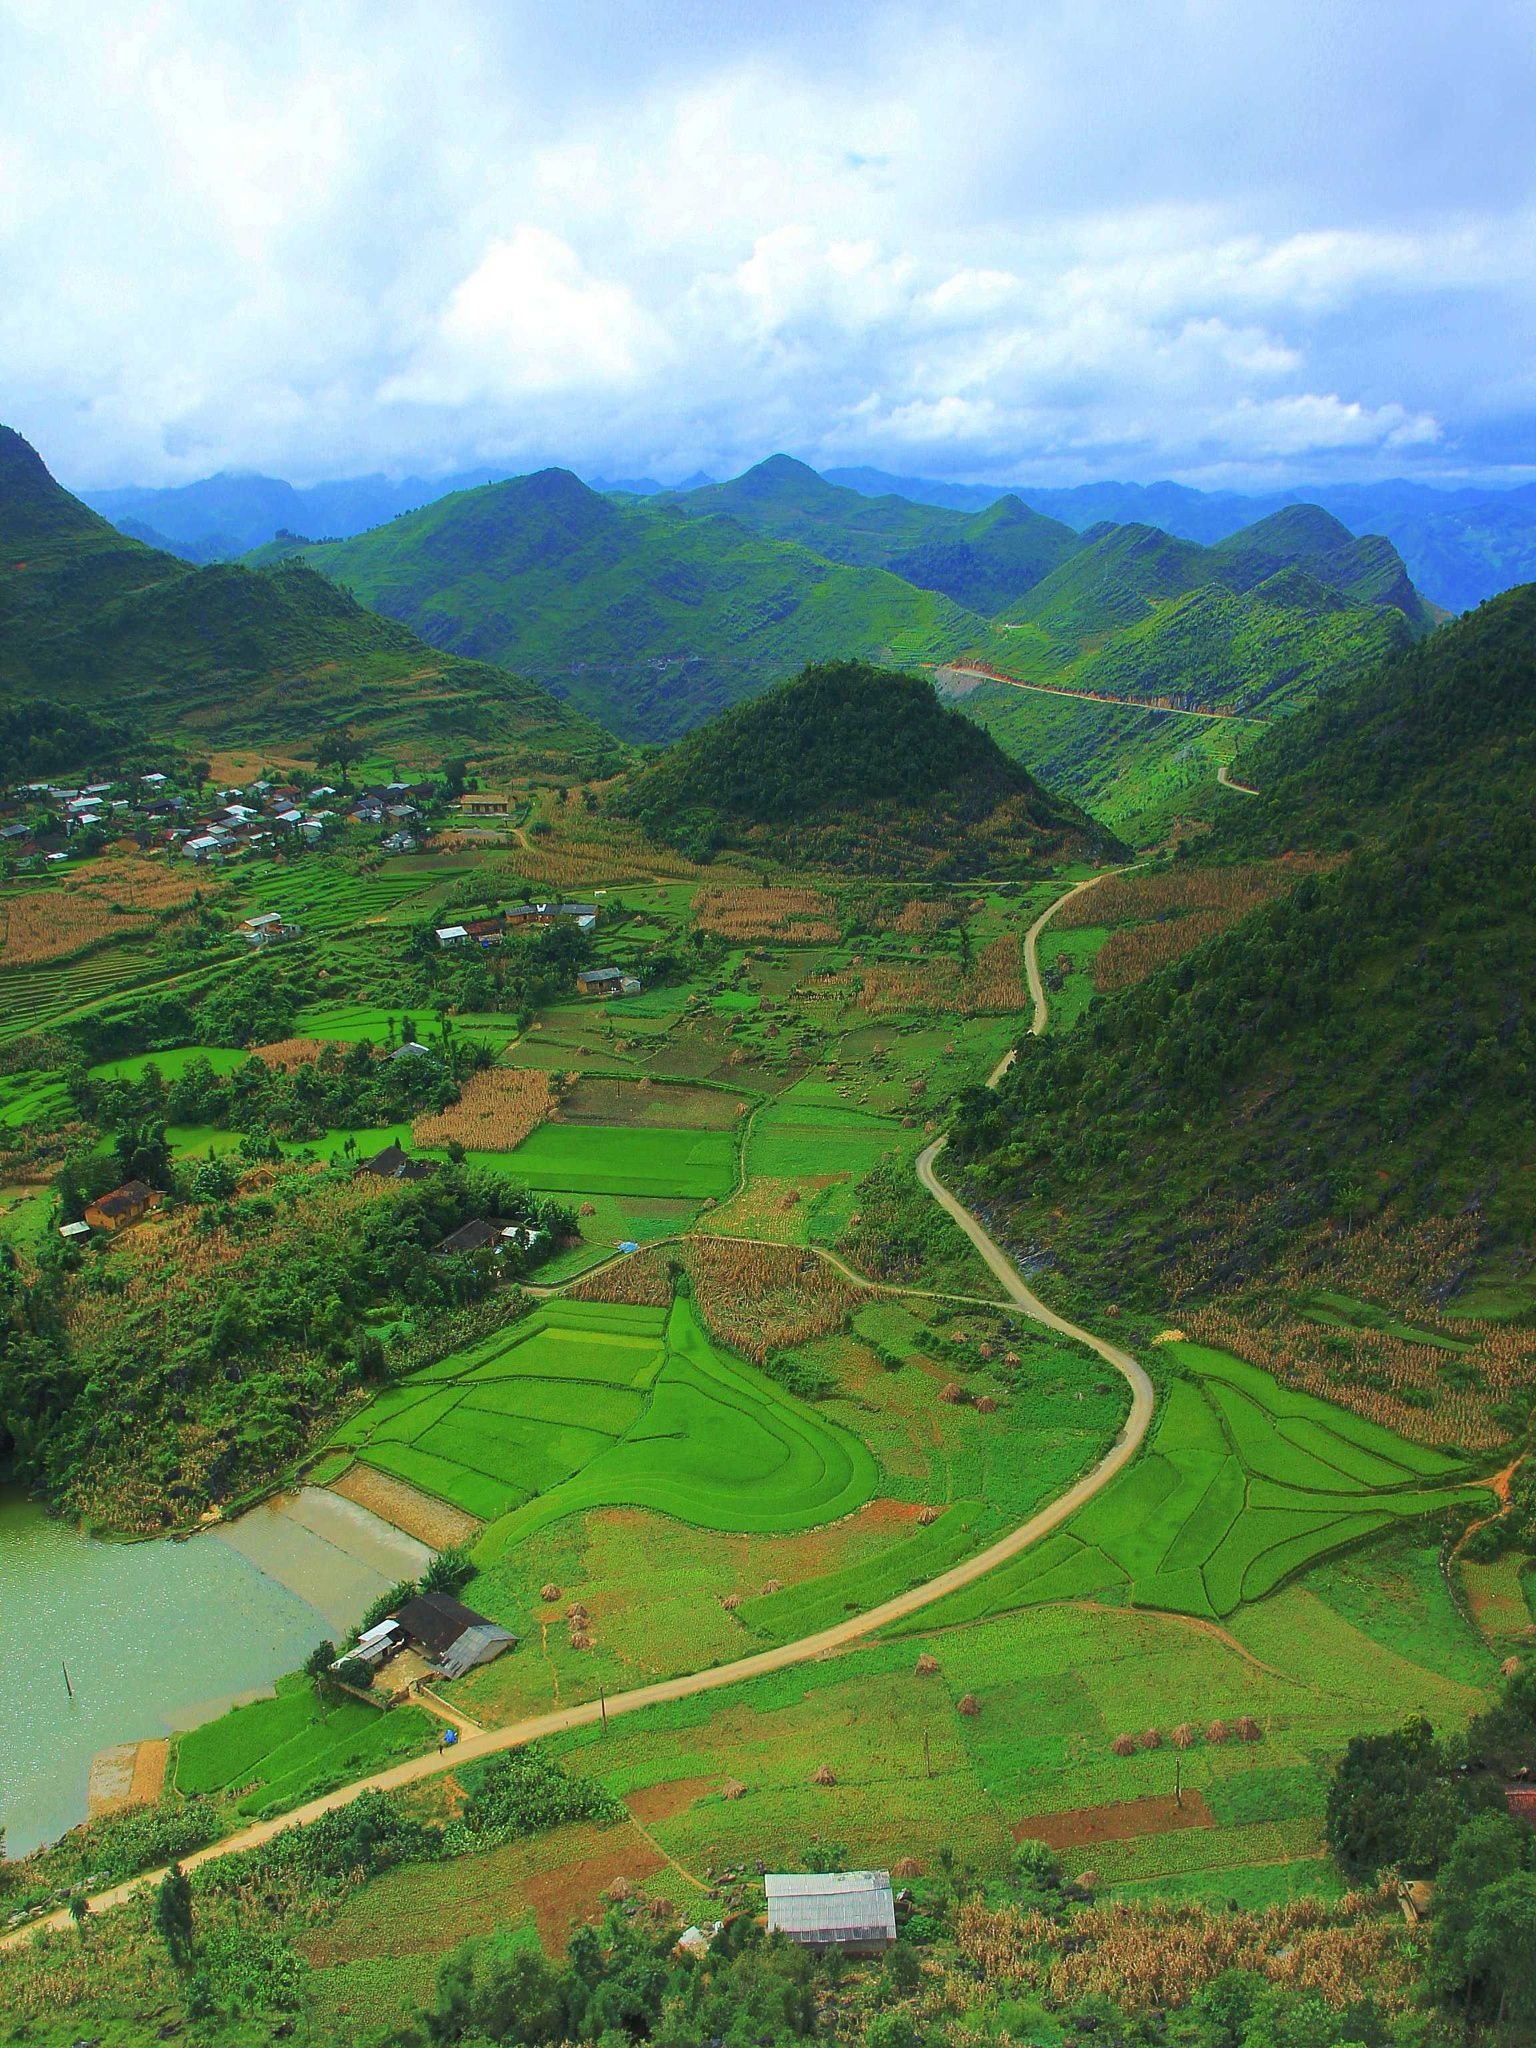 A perspective from Lung Cu by Khoi Tran Duc on 500px